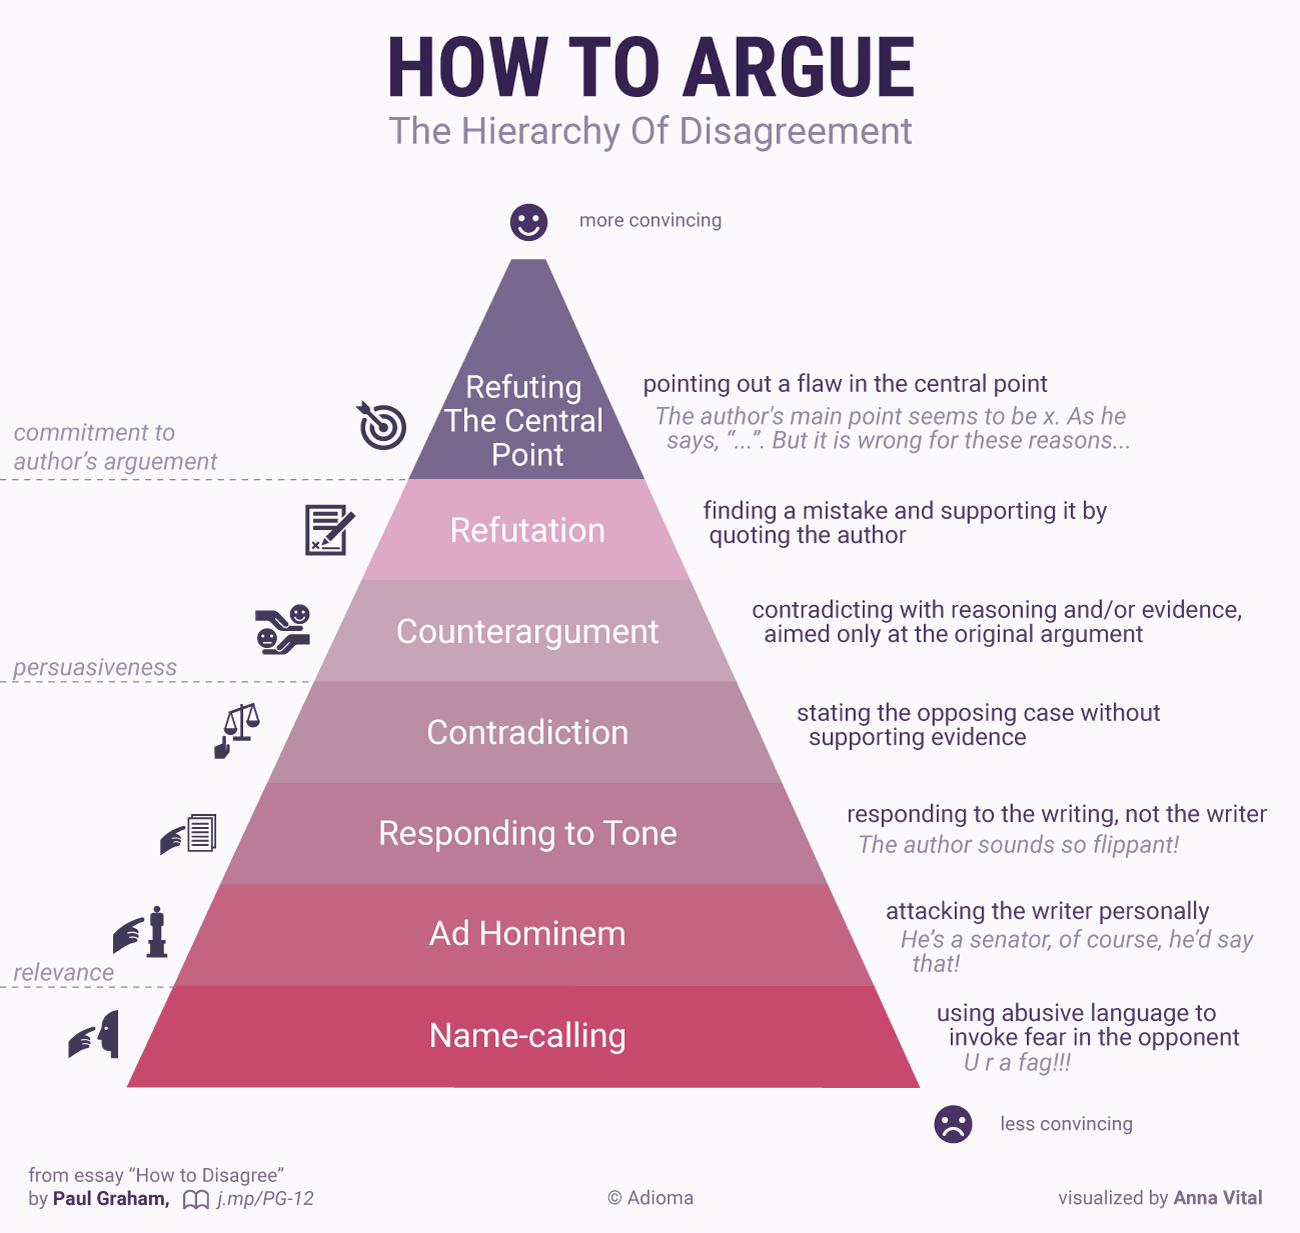 how-to-argue-PG-hierarhy-of-disagrement-infographic